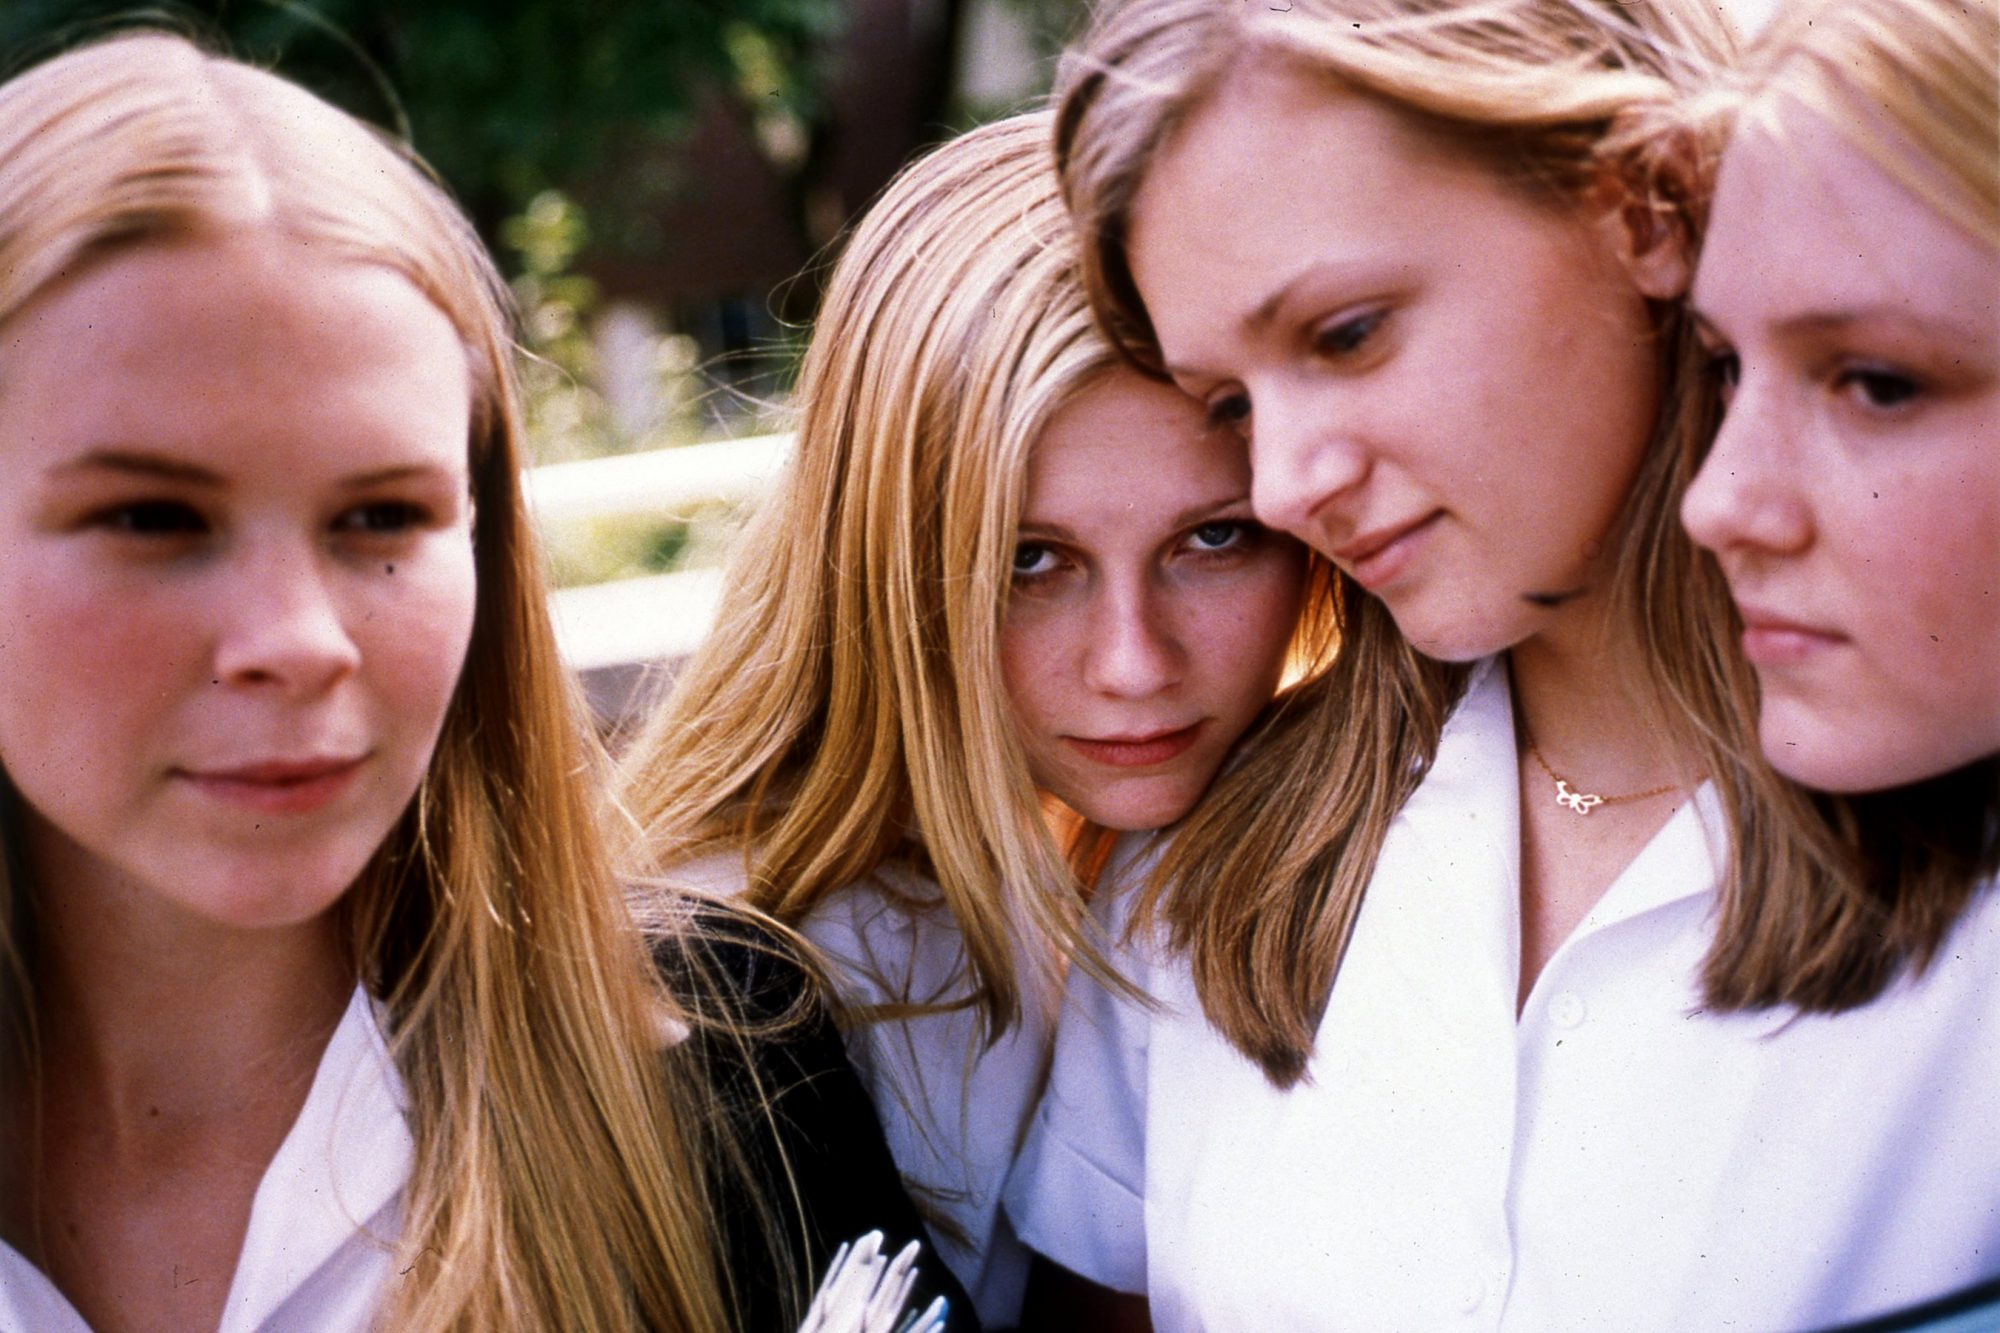 The Lisbon Sisters, The Virgin Suicides